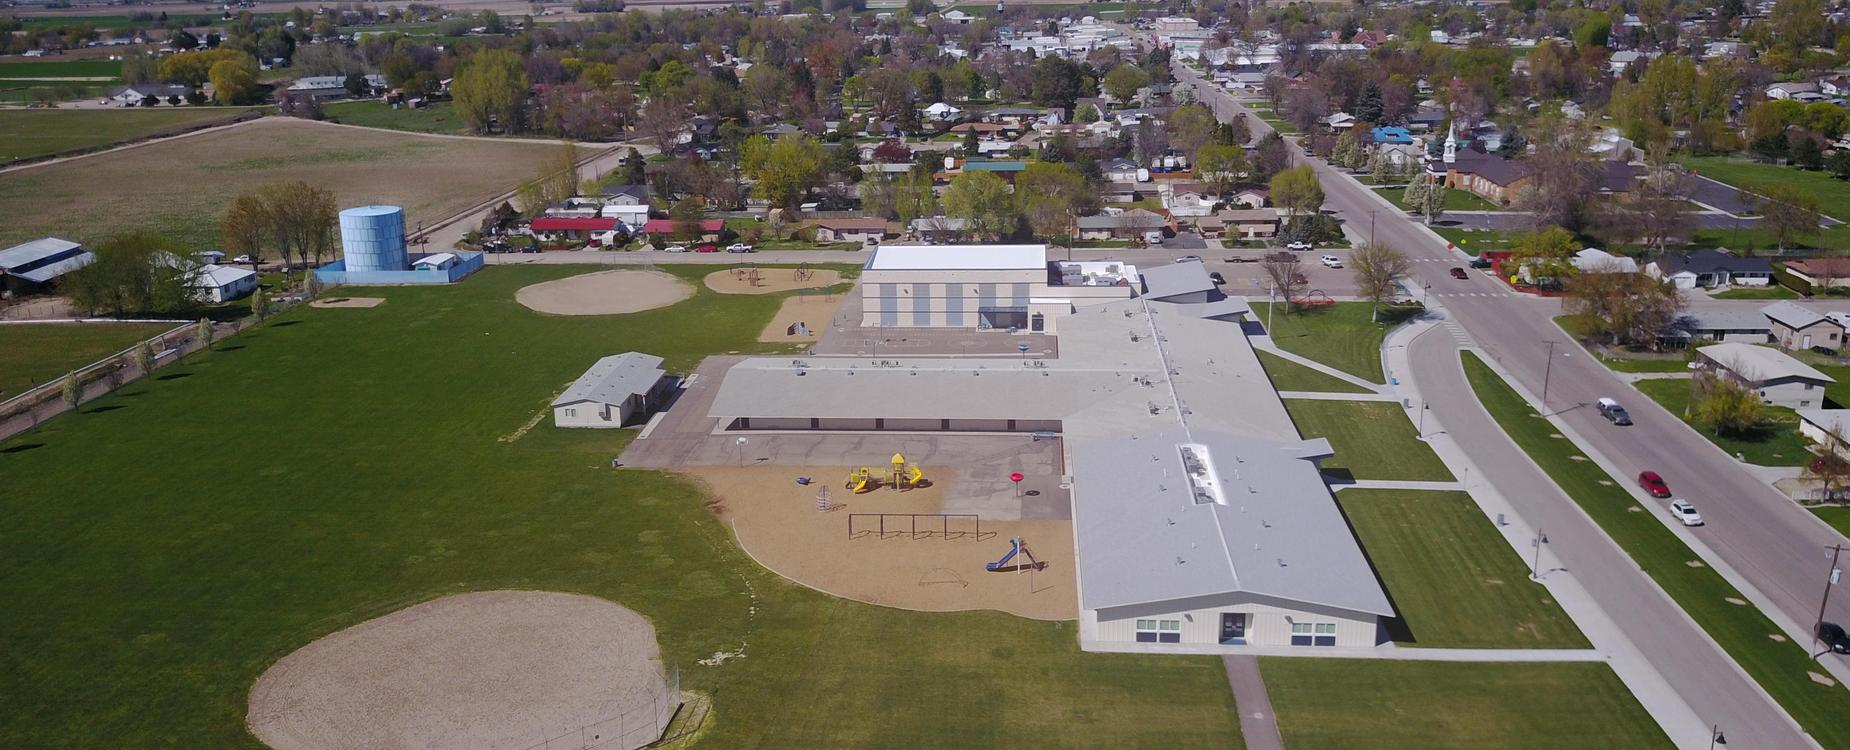 New Plymouth Elementary School aerial view